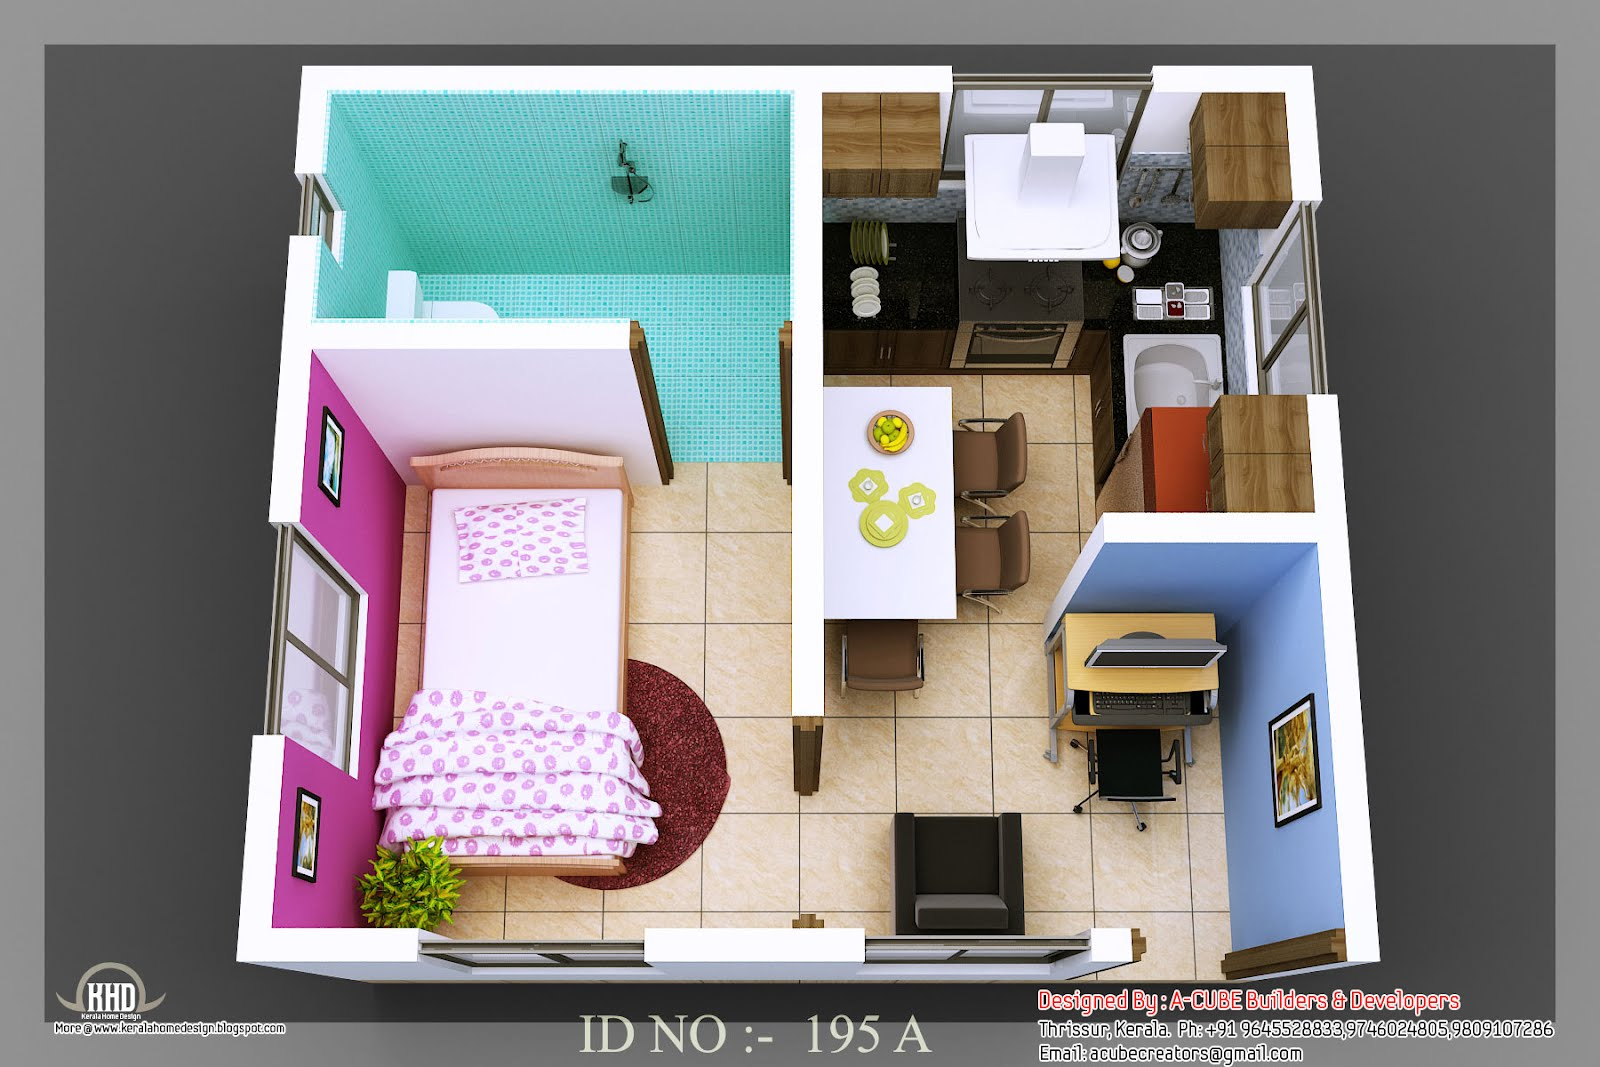 3d Isometric Views Of Small House Plans Home Appliance: home design 3d